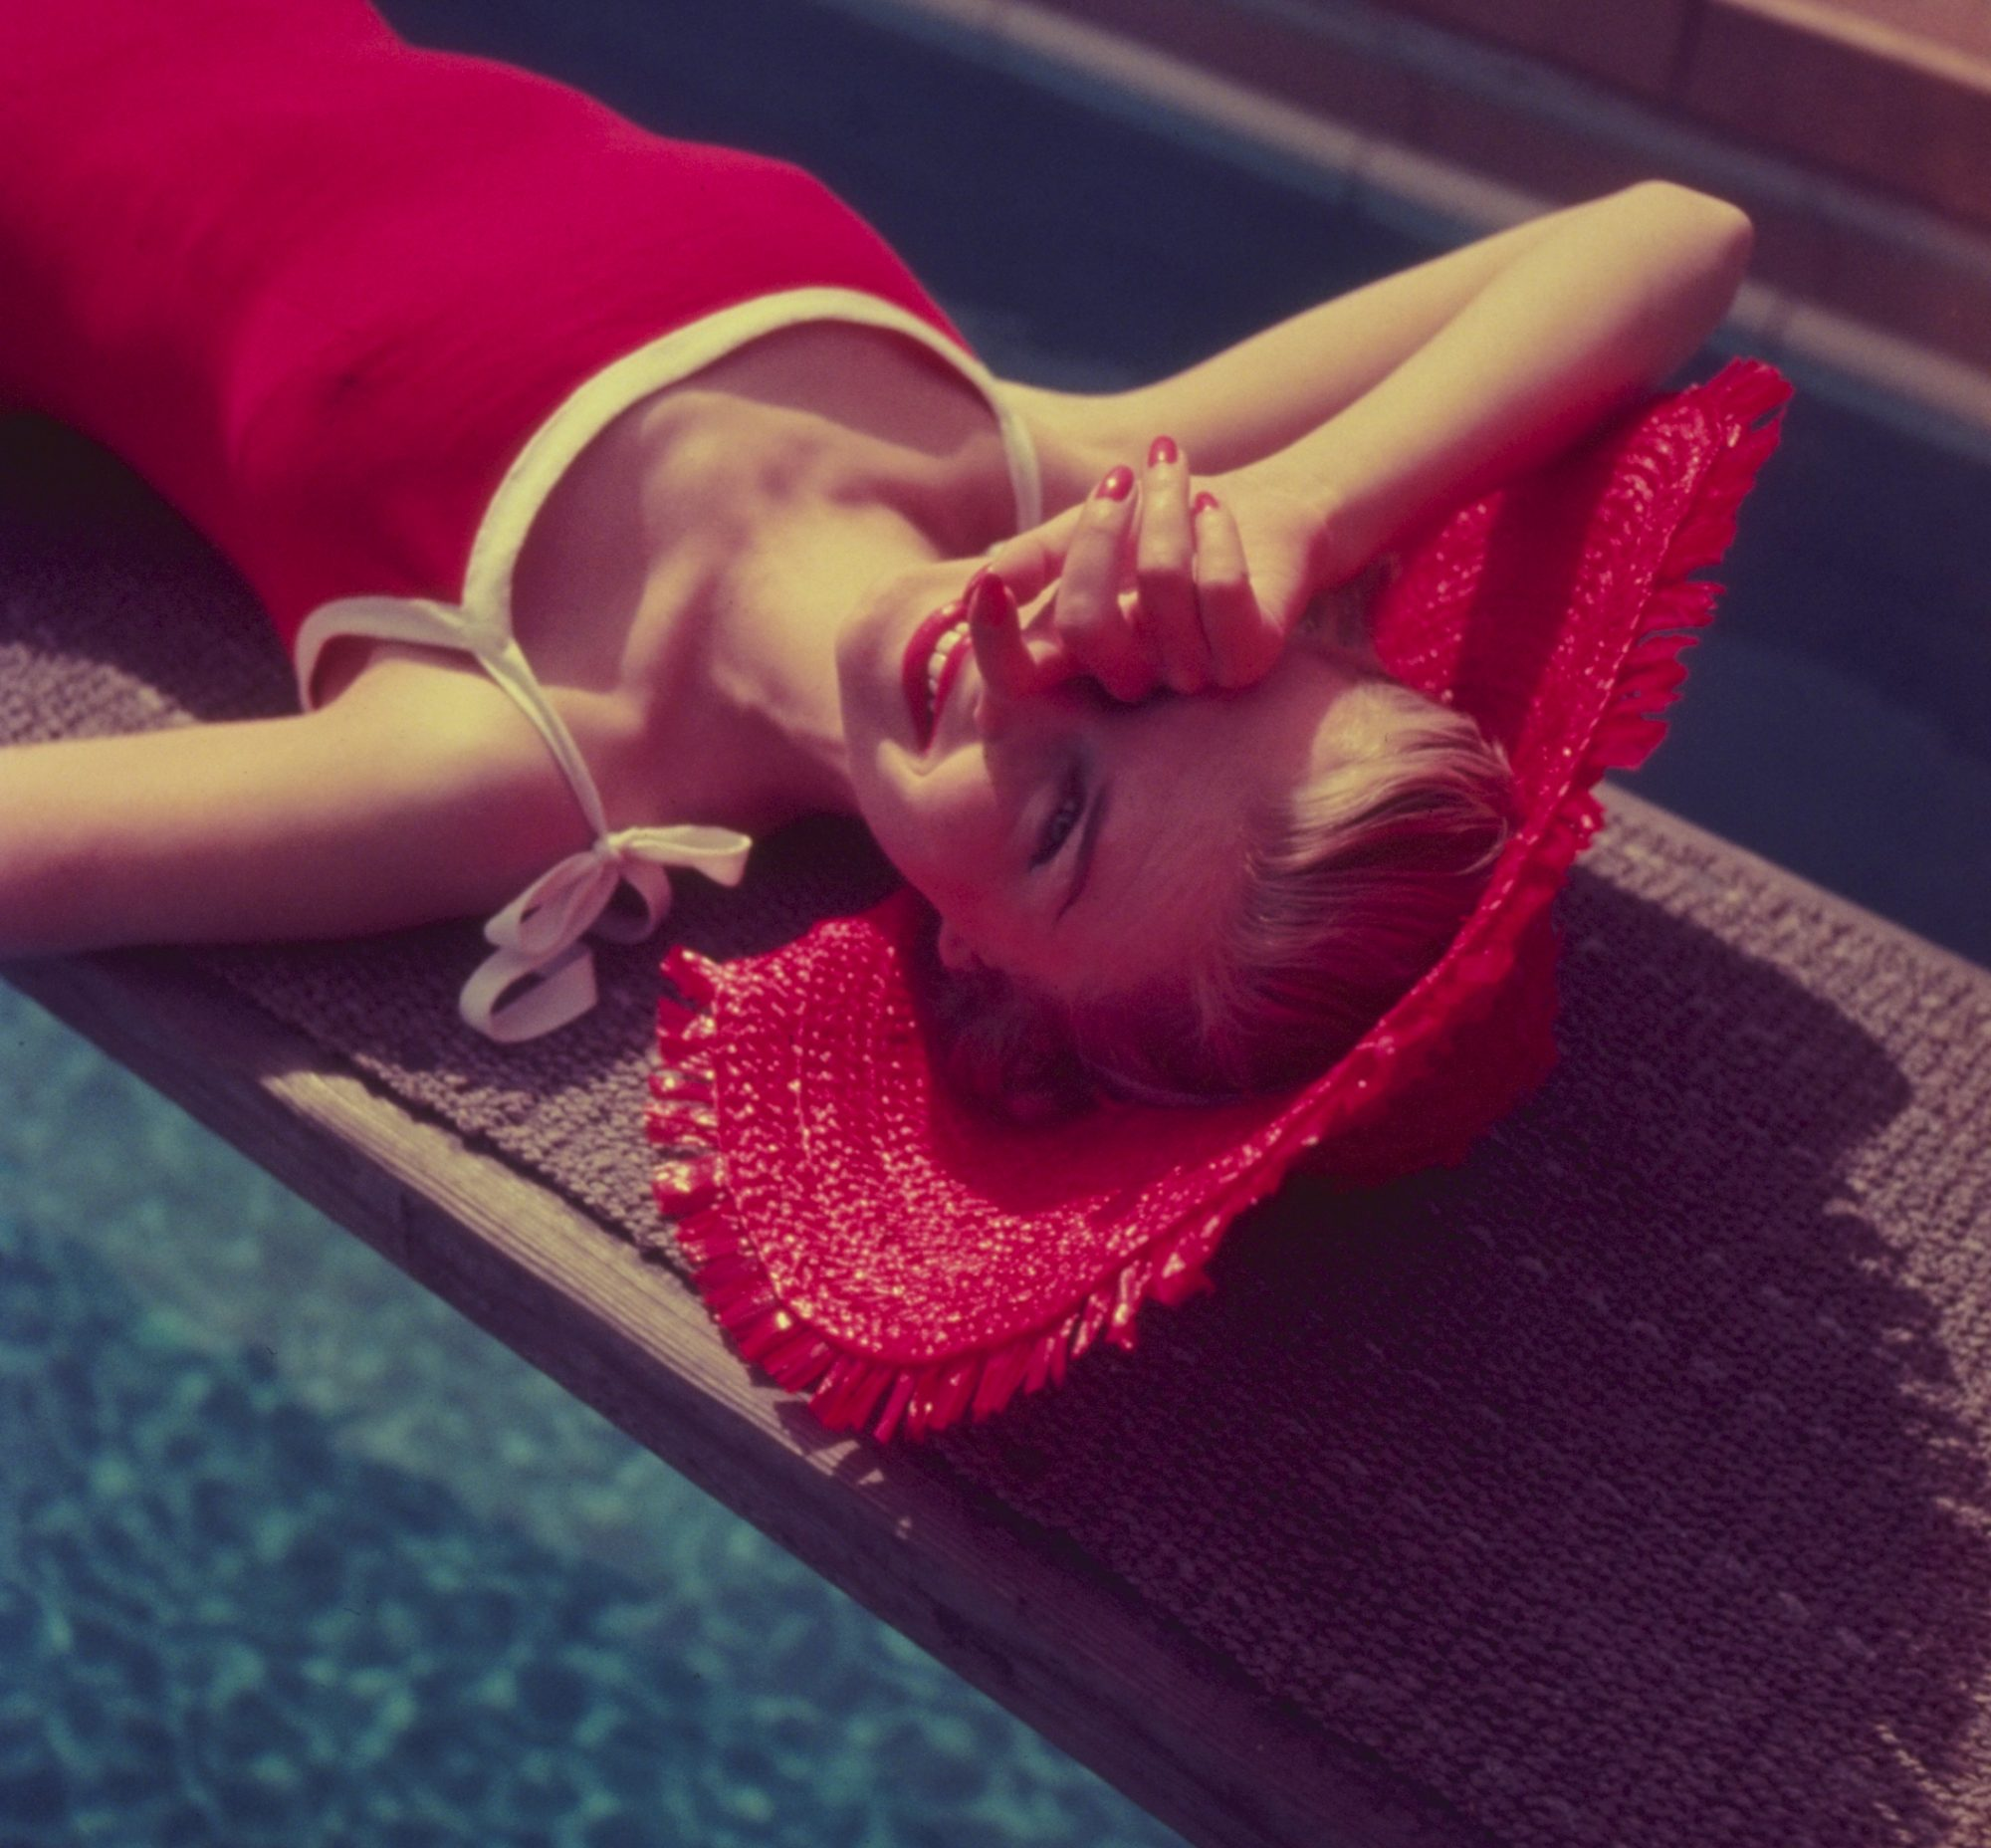 Woman in Red Laying by Pool